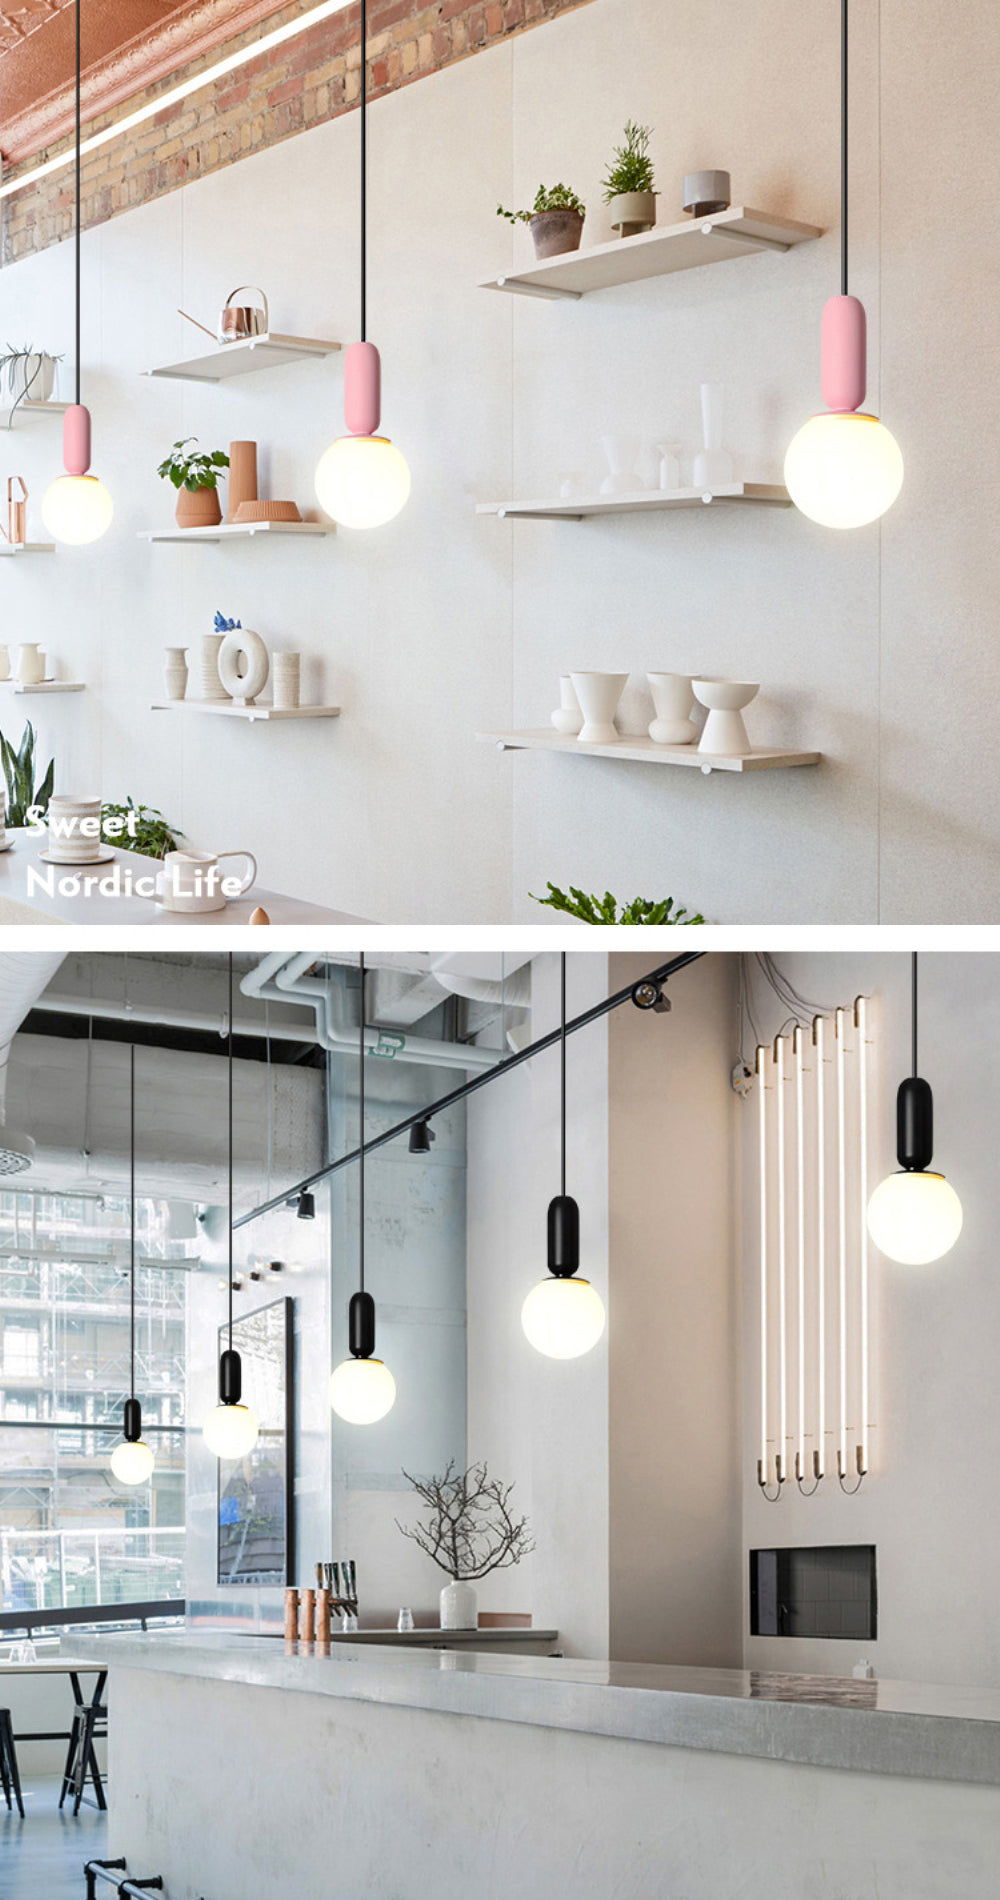 Colorful Nordic Pendant Lamps Simple Modern Style Hanging Lights For Kids Room Living Room Lighting Solution For Contemporary Home Office Interior Decor